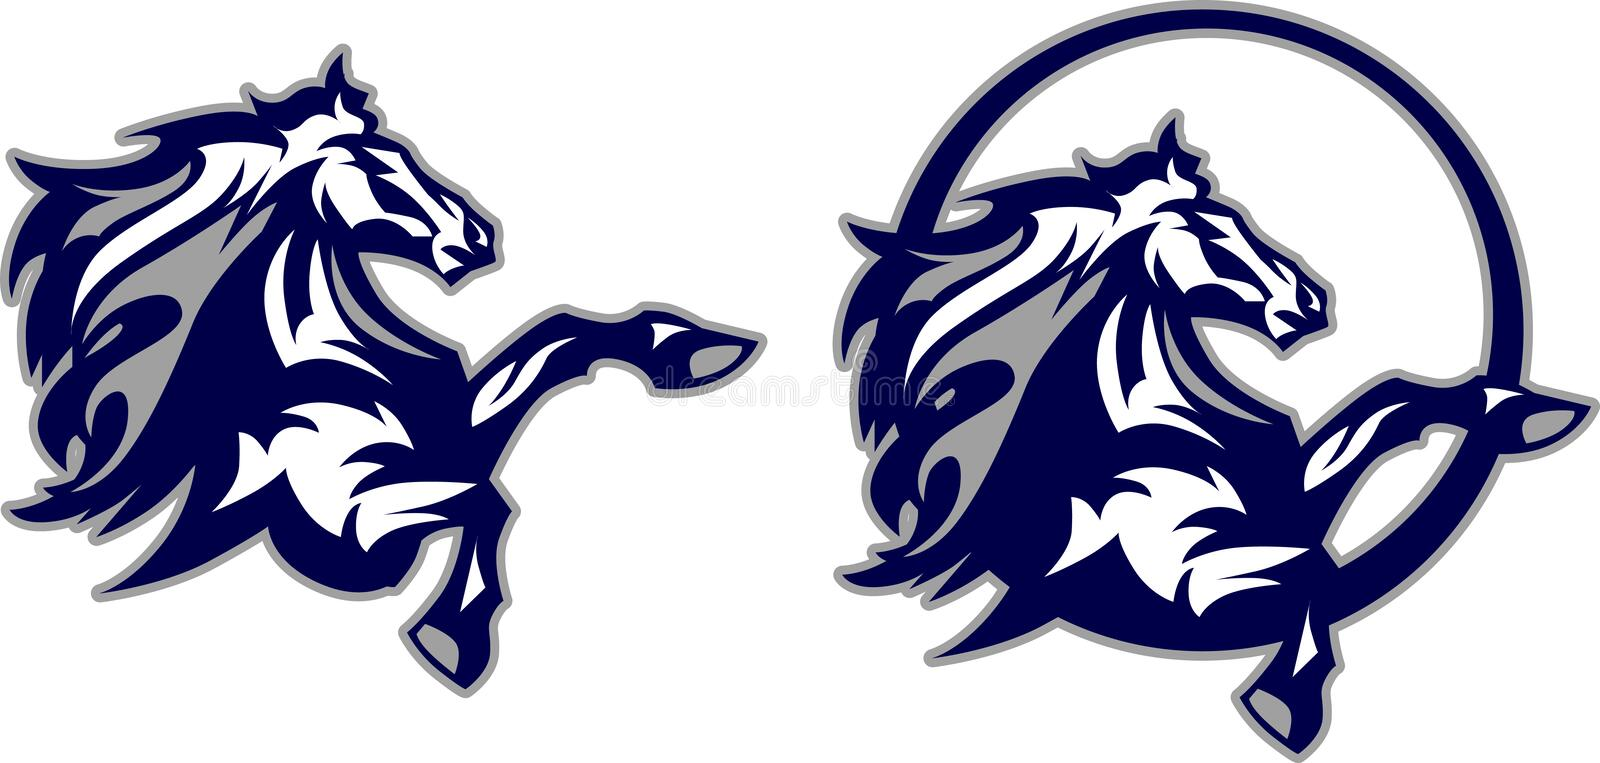 Horse / Mustang / Bronco Mascot Logo stock illustration